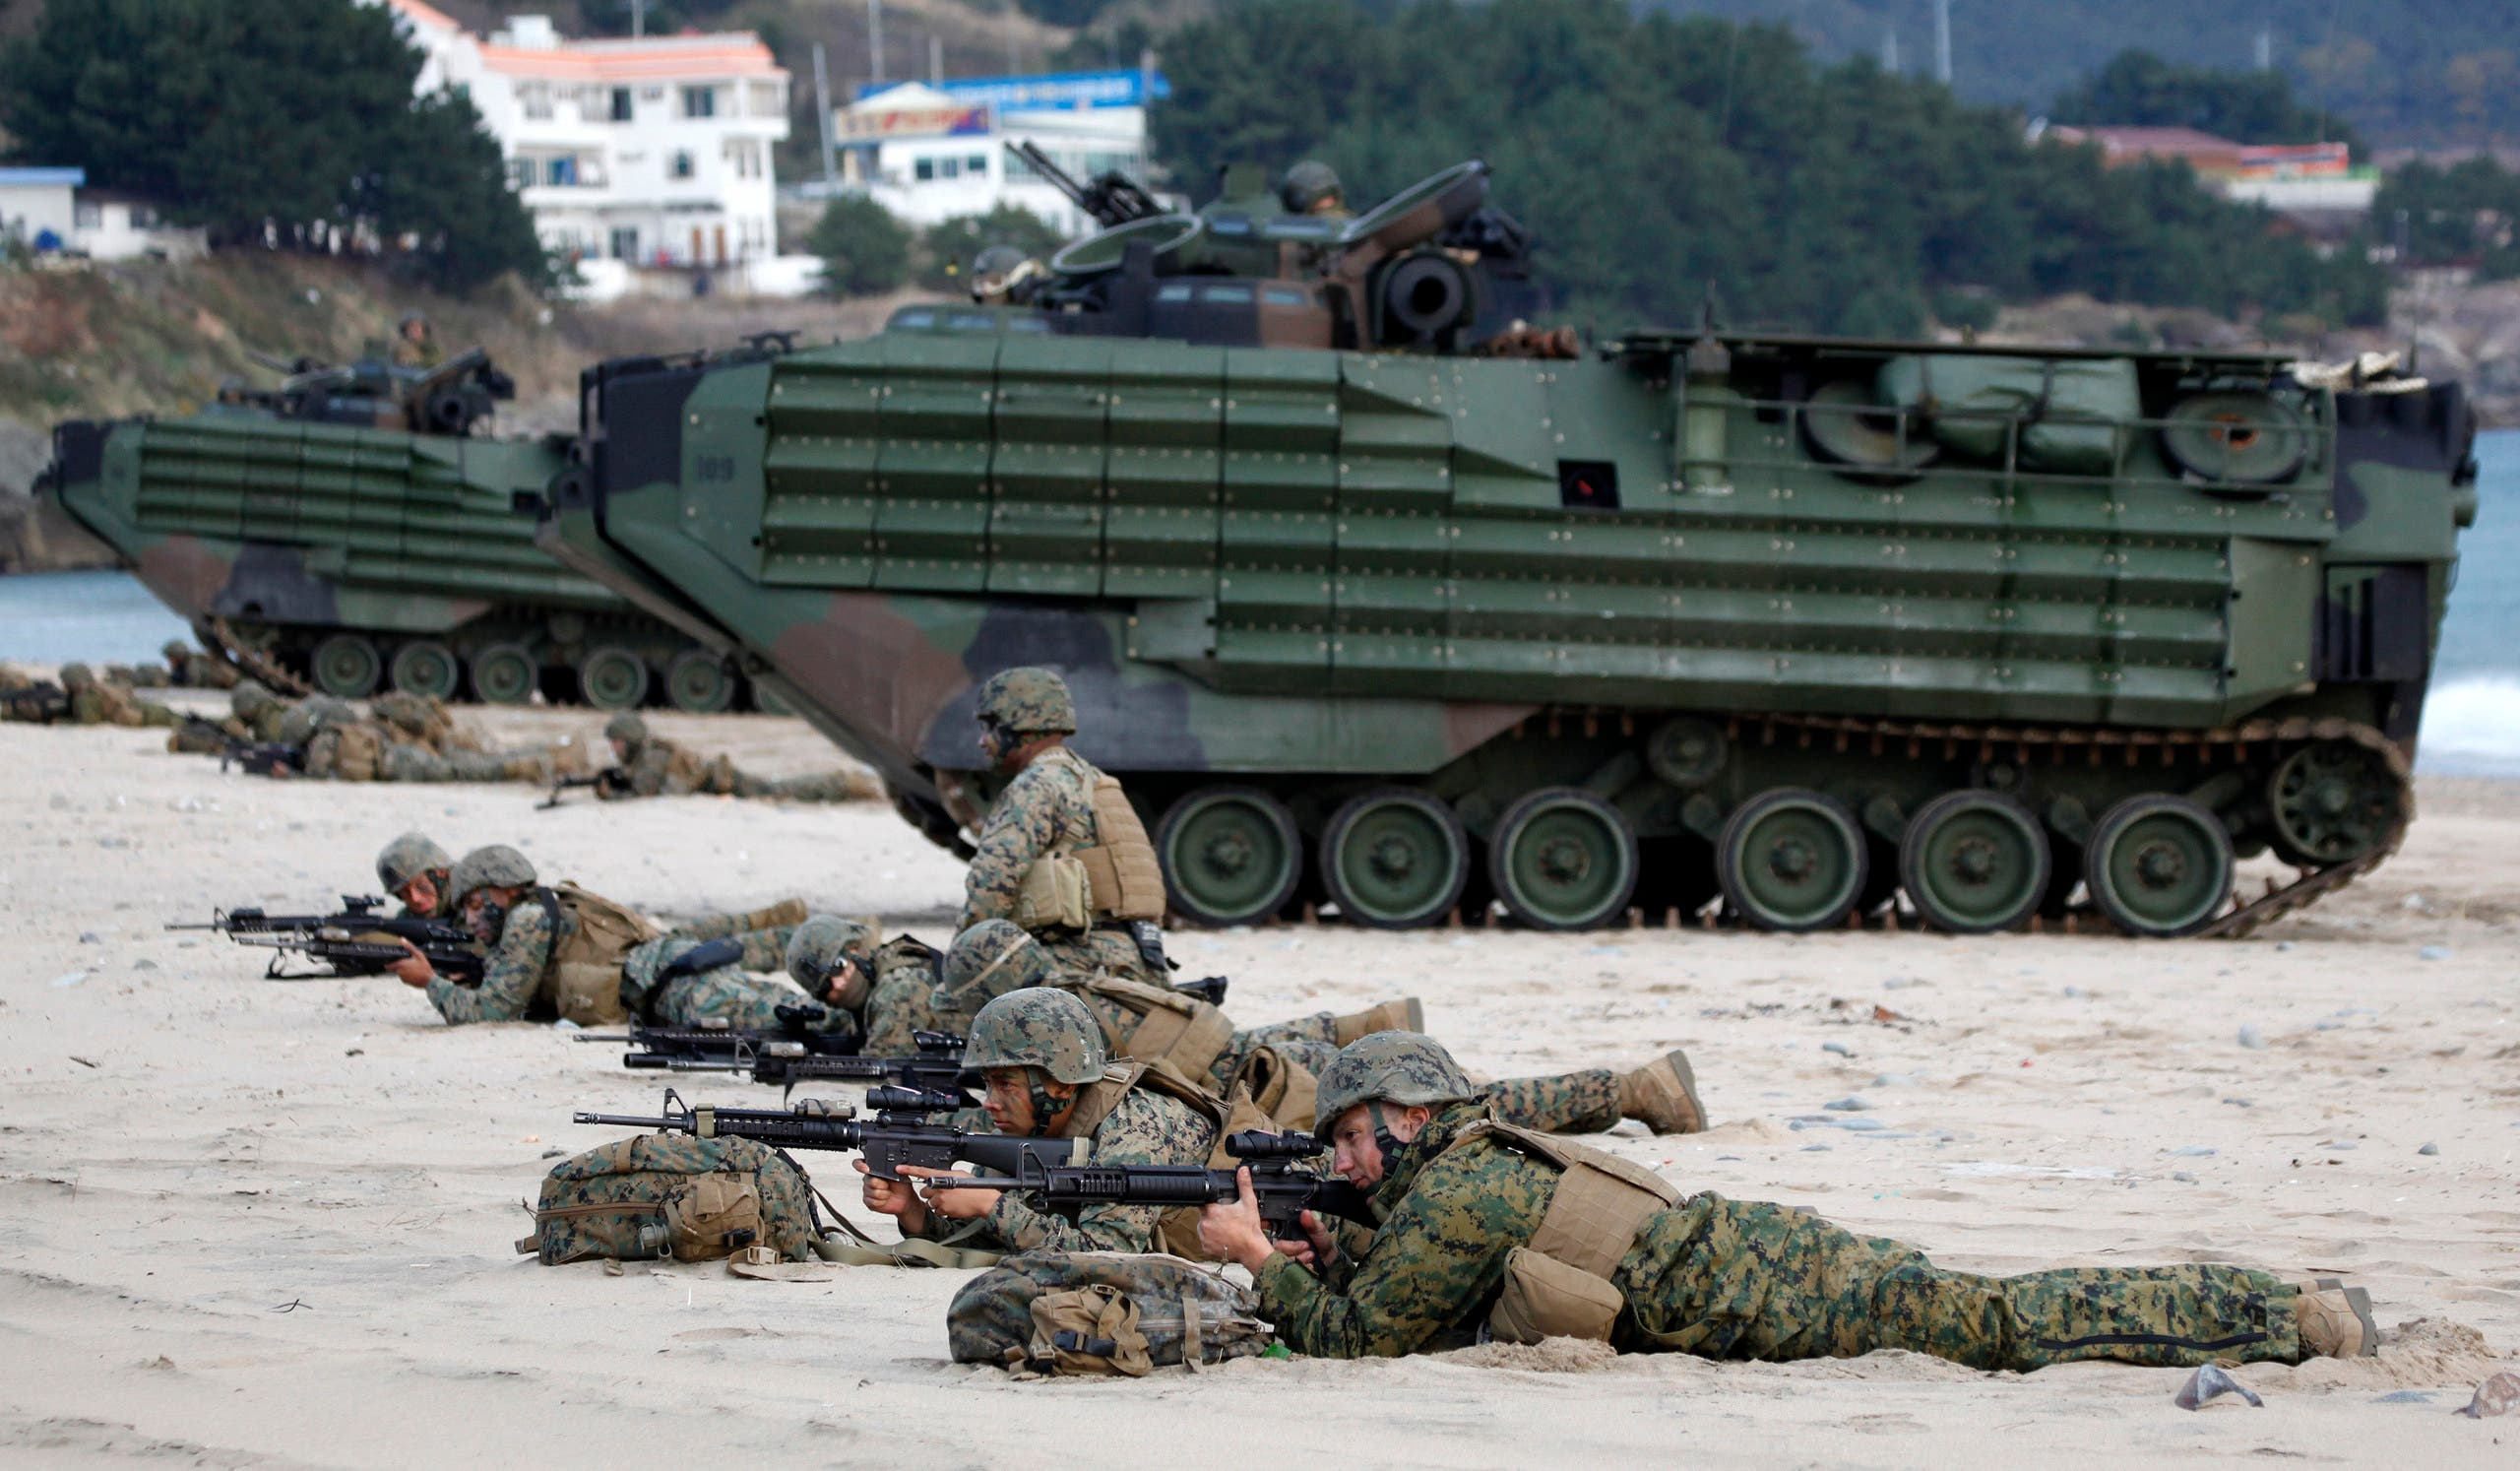 Soldiers from the U.S. Marine Corps take part in a U.S.-South Korea joint landing operation drill along the shore in Pohang, about 370 km (230 miles) southeast of Seoul, November 4, 2009. (File photo: Reuters)